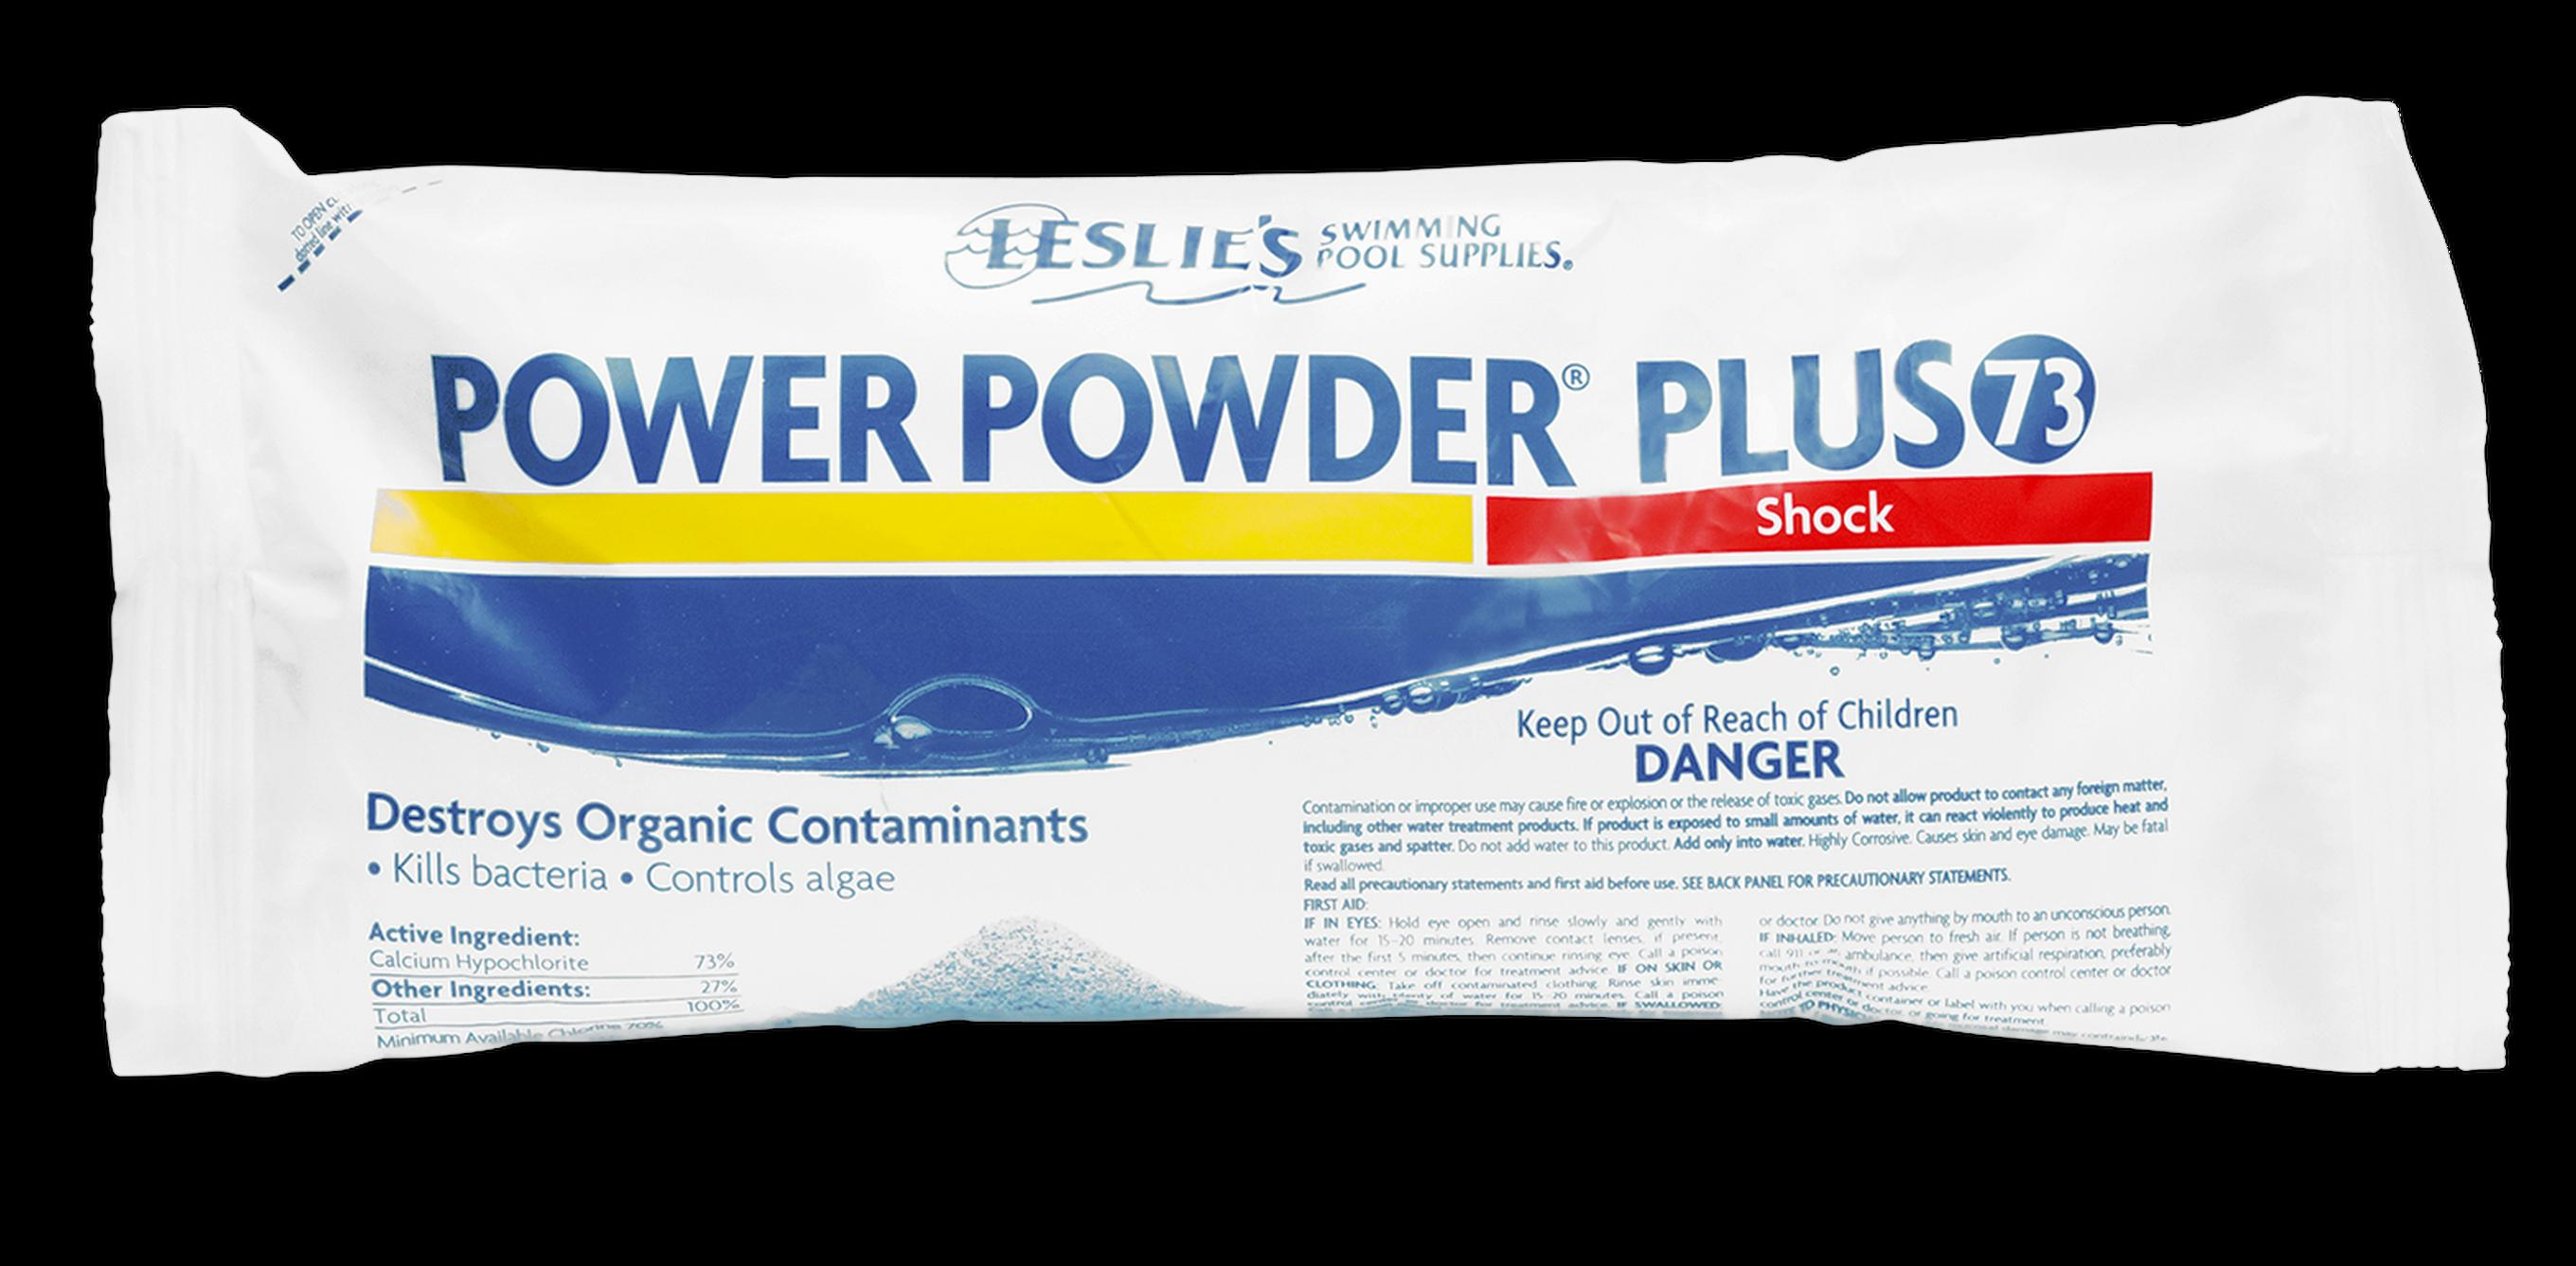 A picture of Power Powder